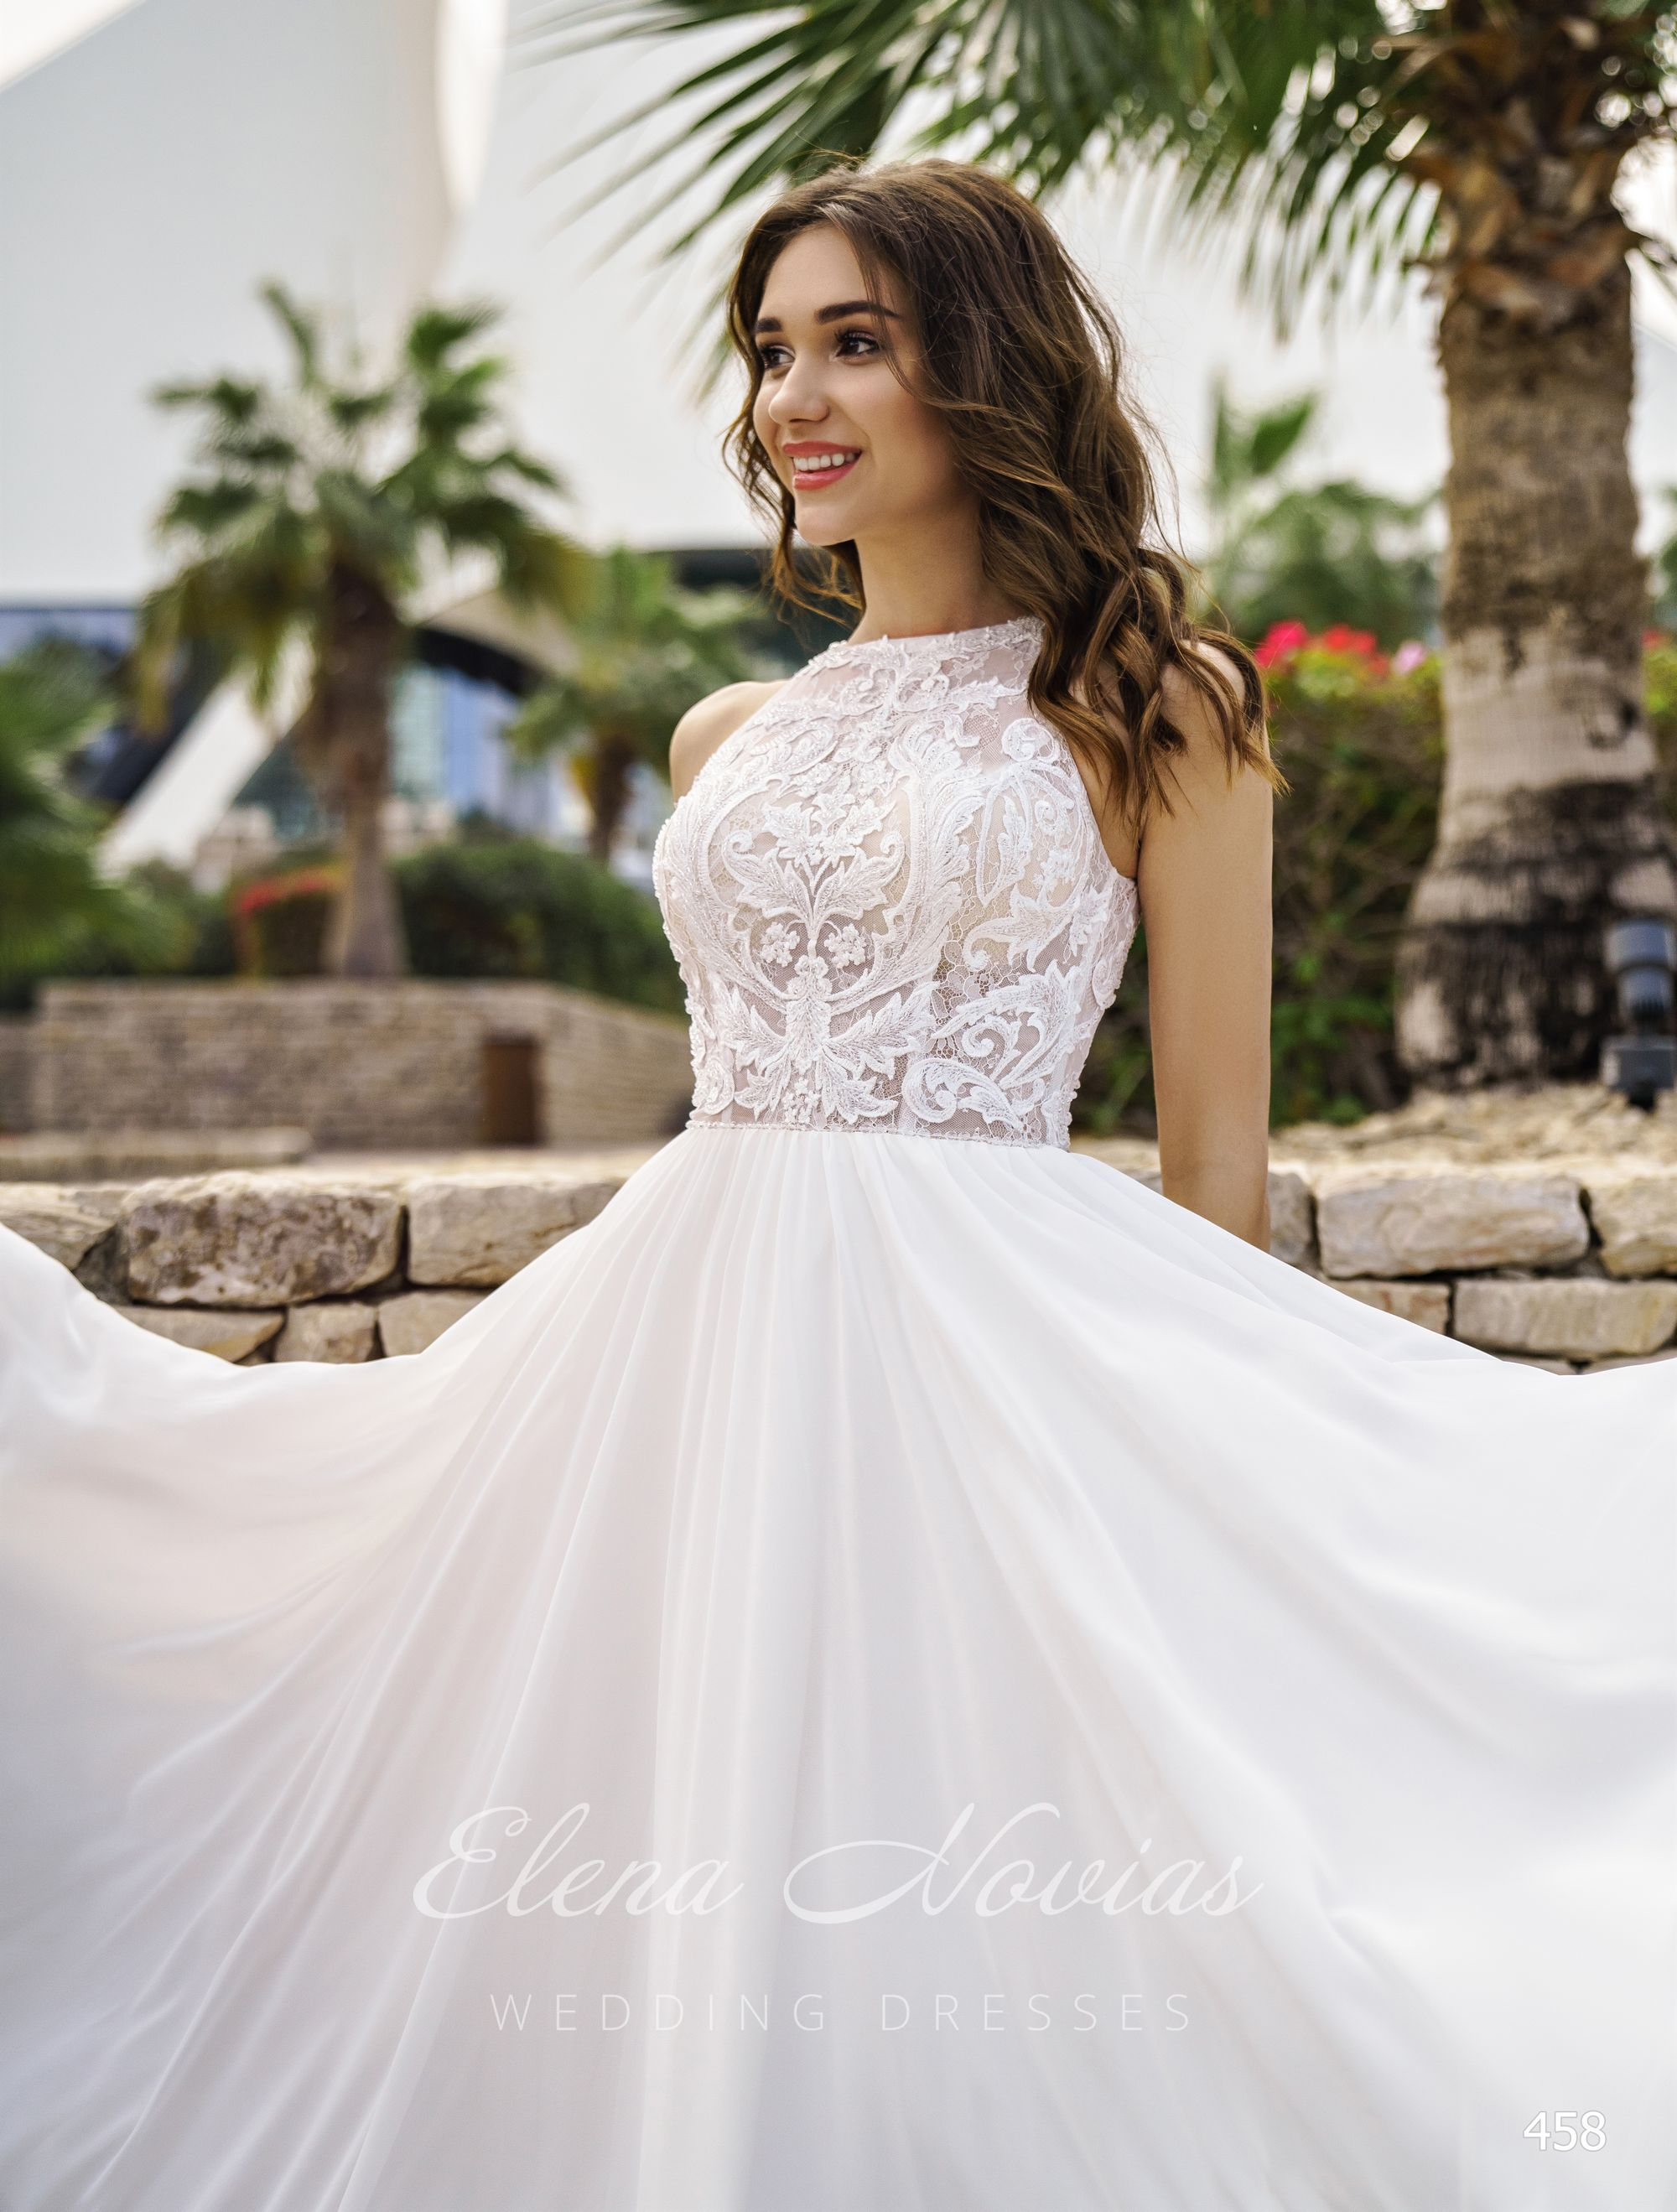 Wedding dresses 458